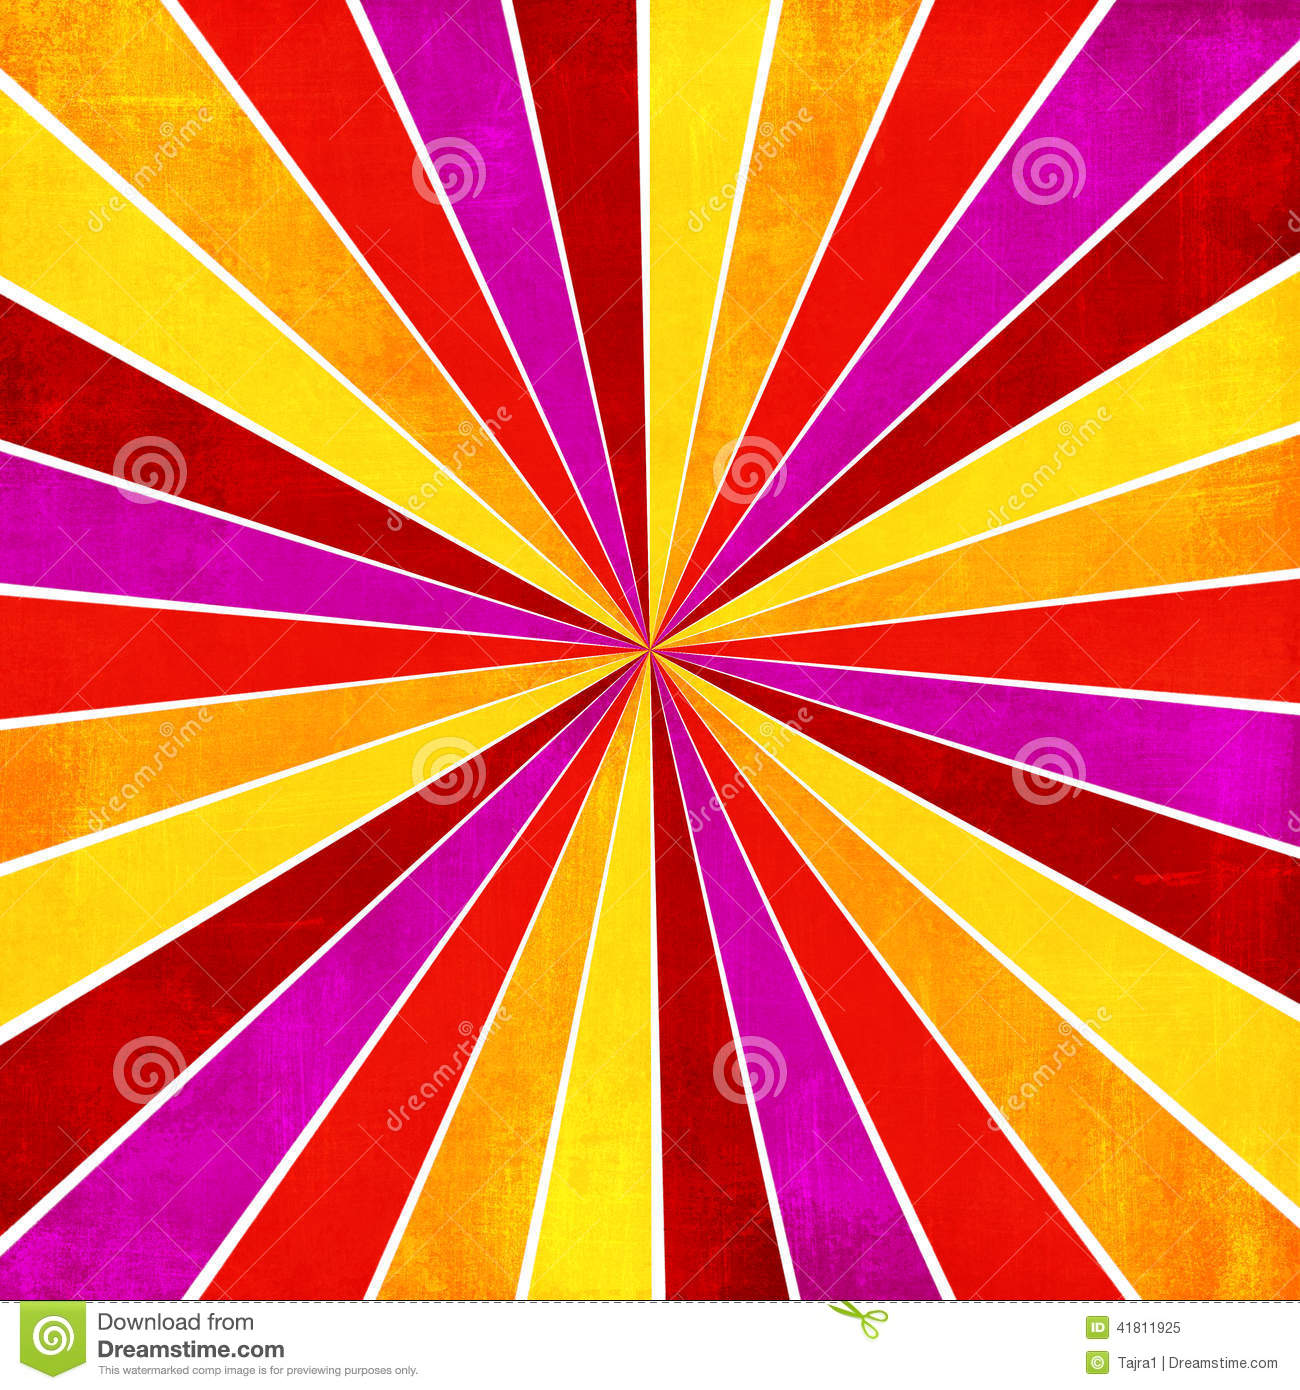 Colorful Yellow, Pink, Orange And Red Ray Sunburst Style ...